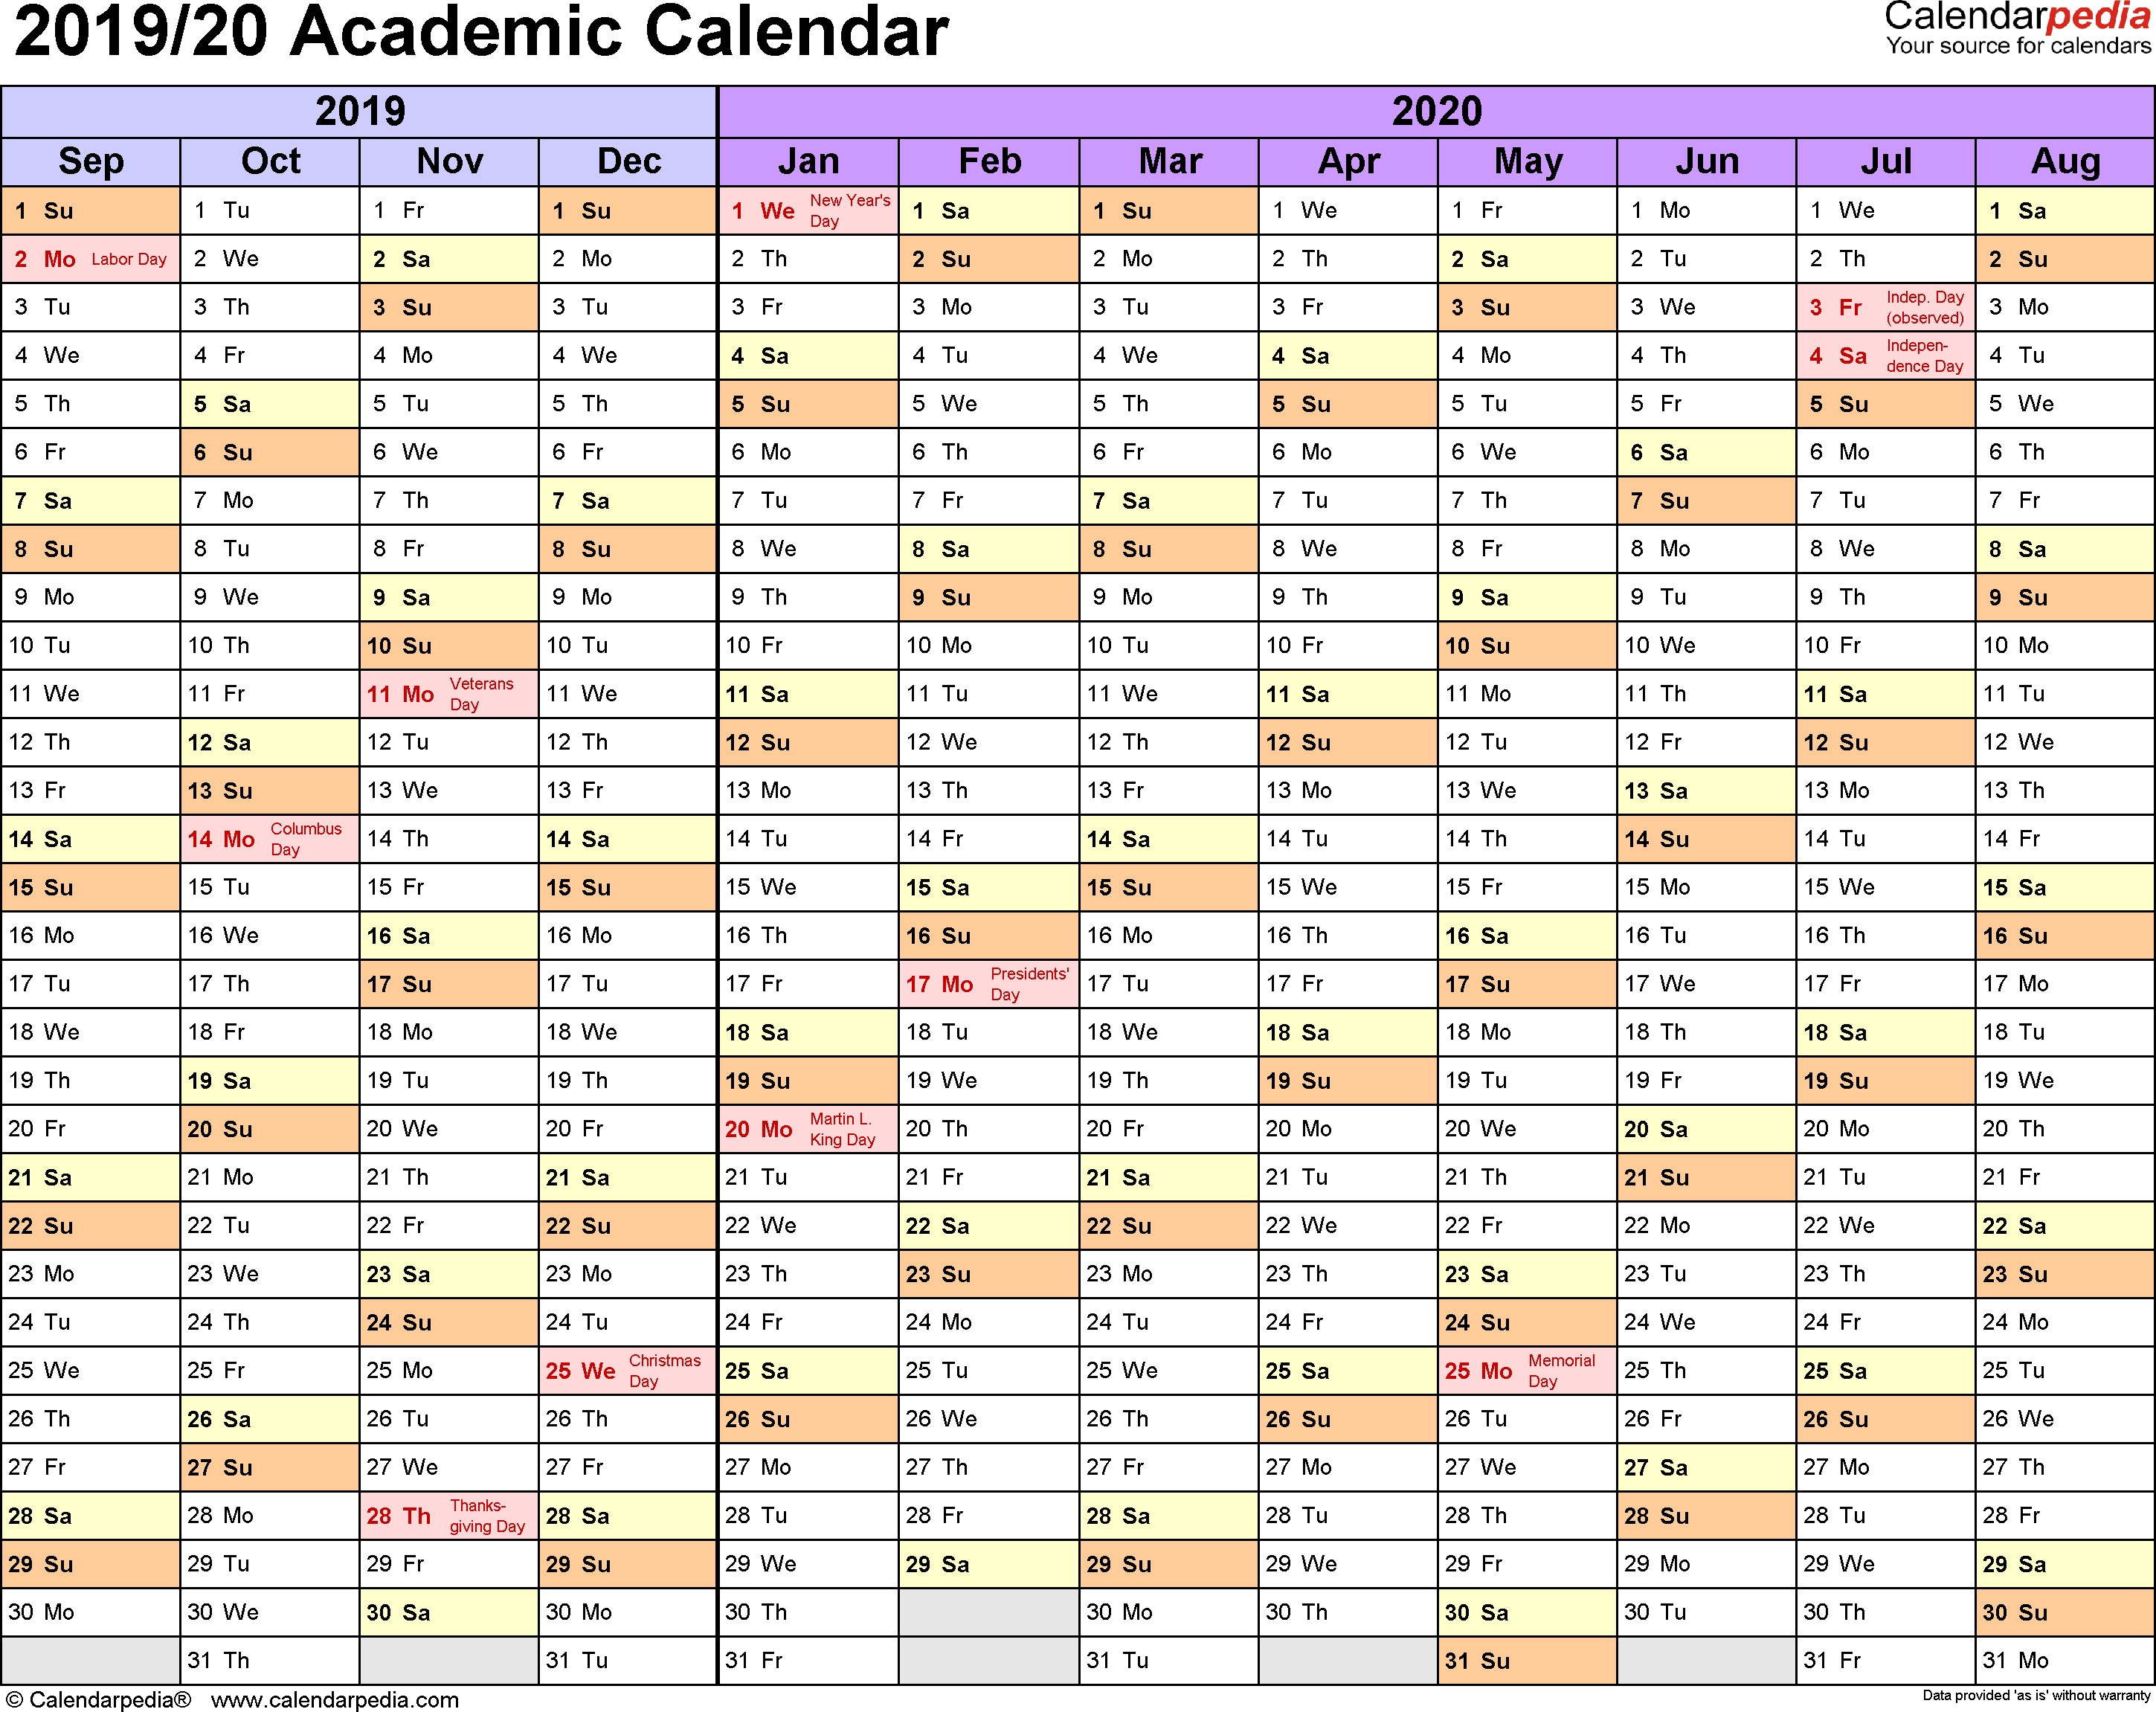 Academic Calendars 2019/2020 - Free Printable Excel Templates within Canadian Printable Academic Calendar 2019-2020